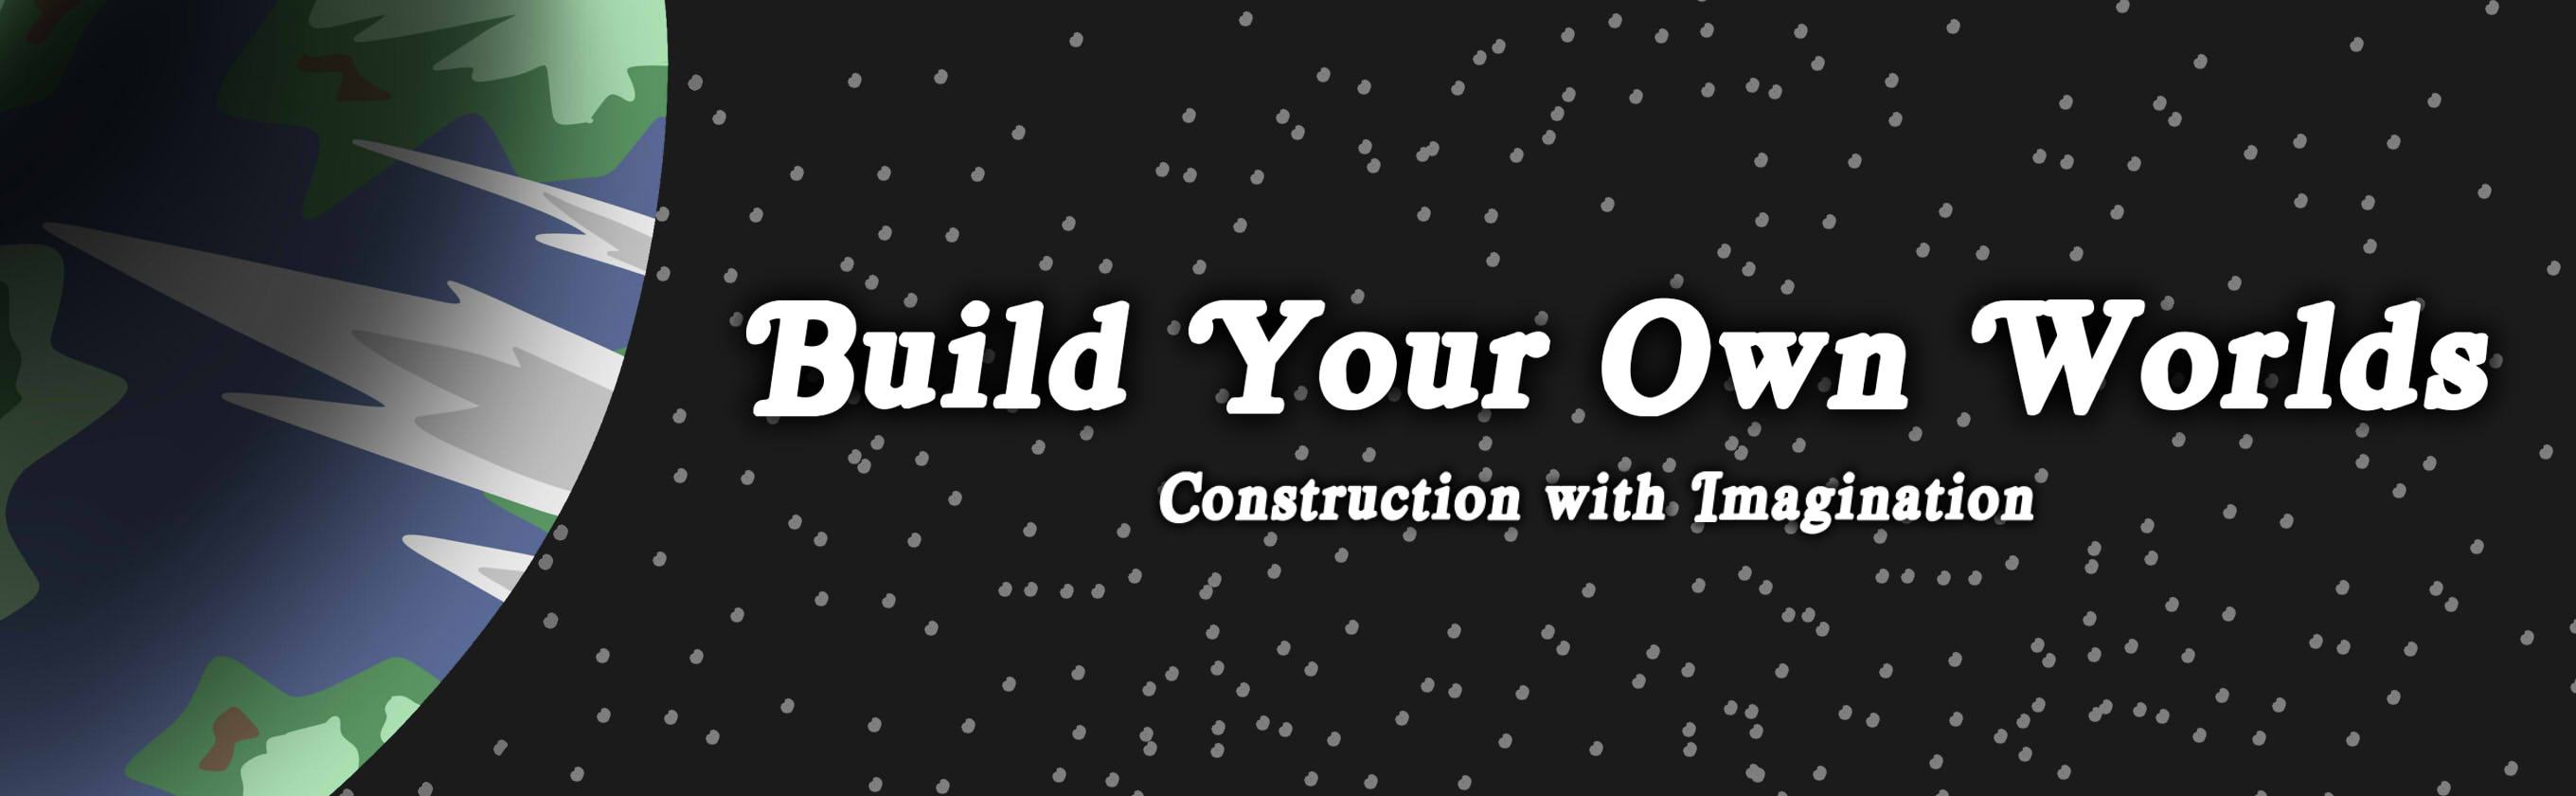 Build Your Own Worlds